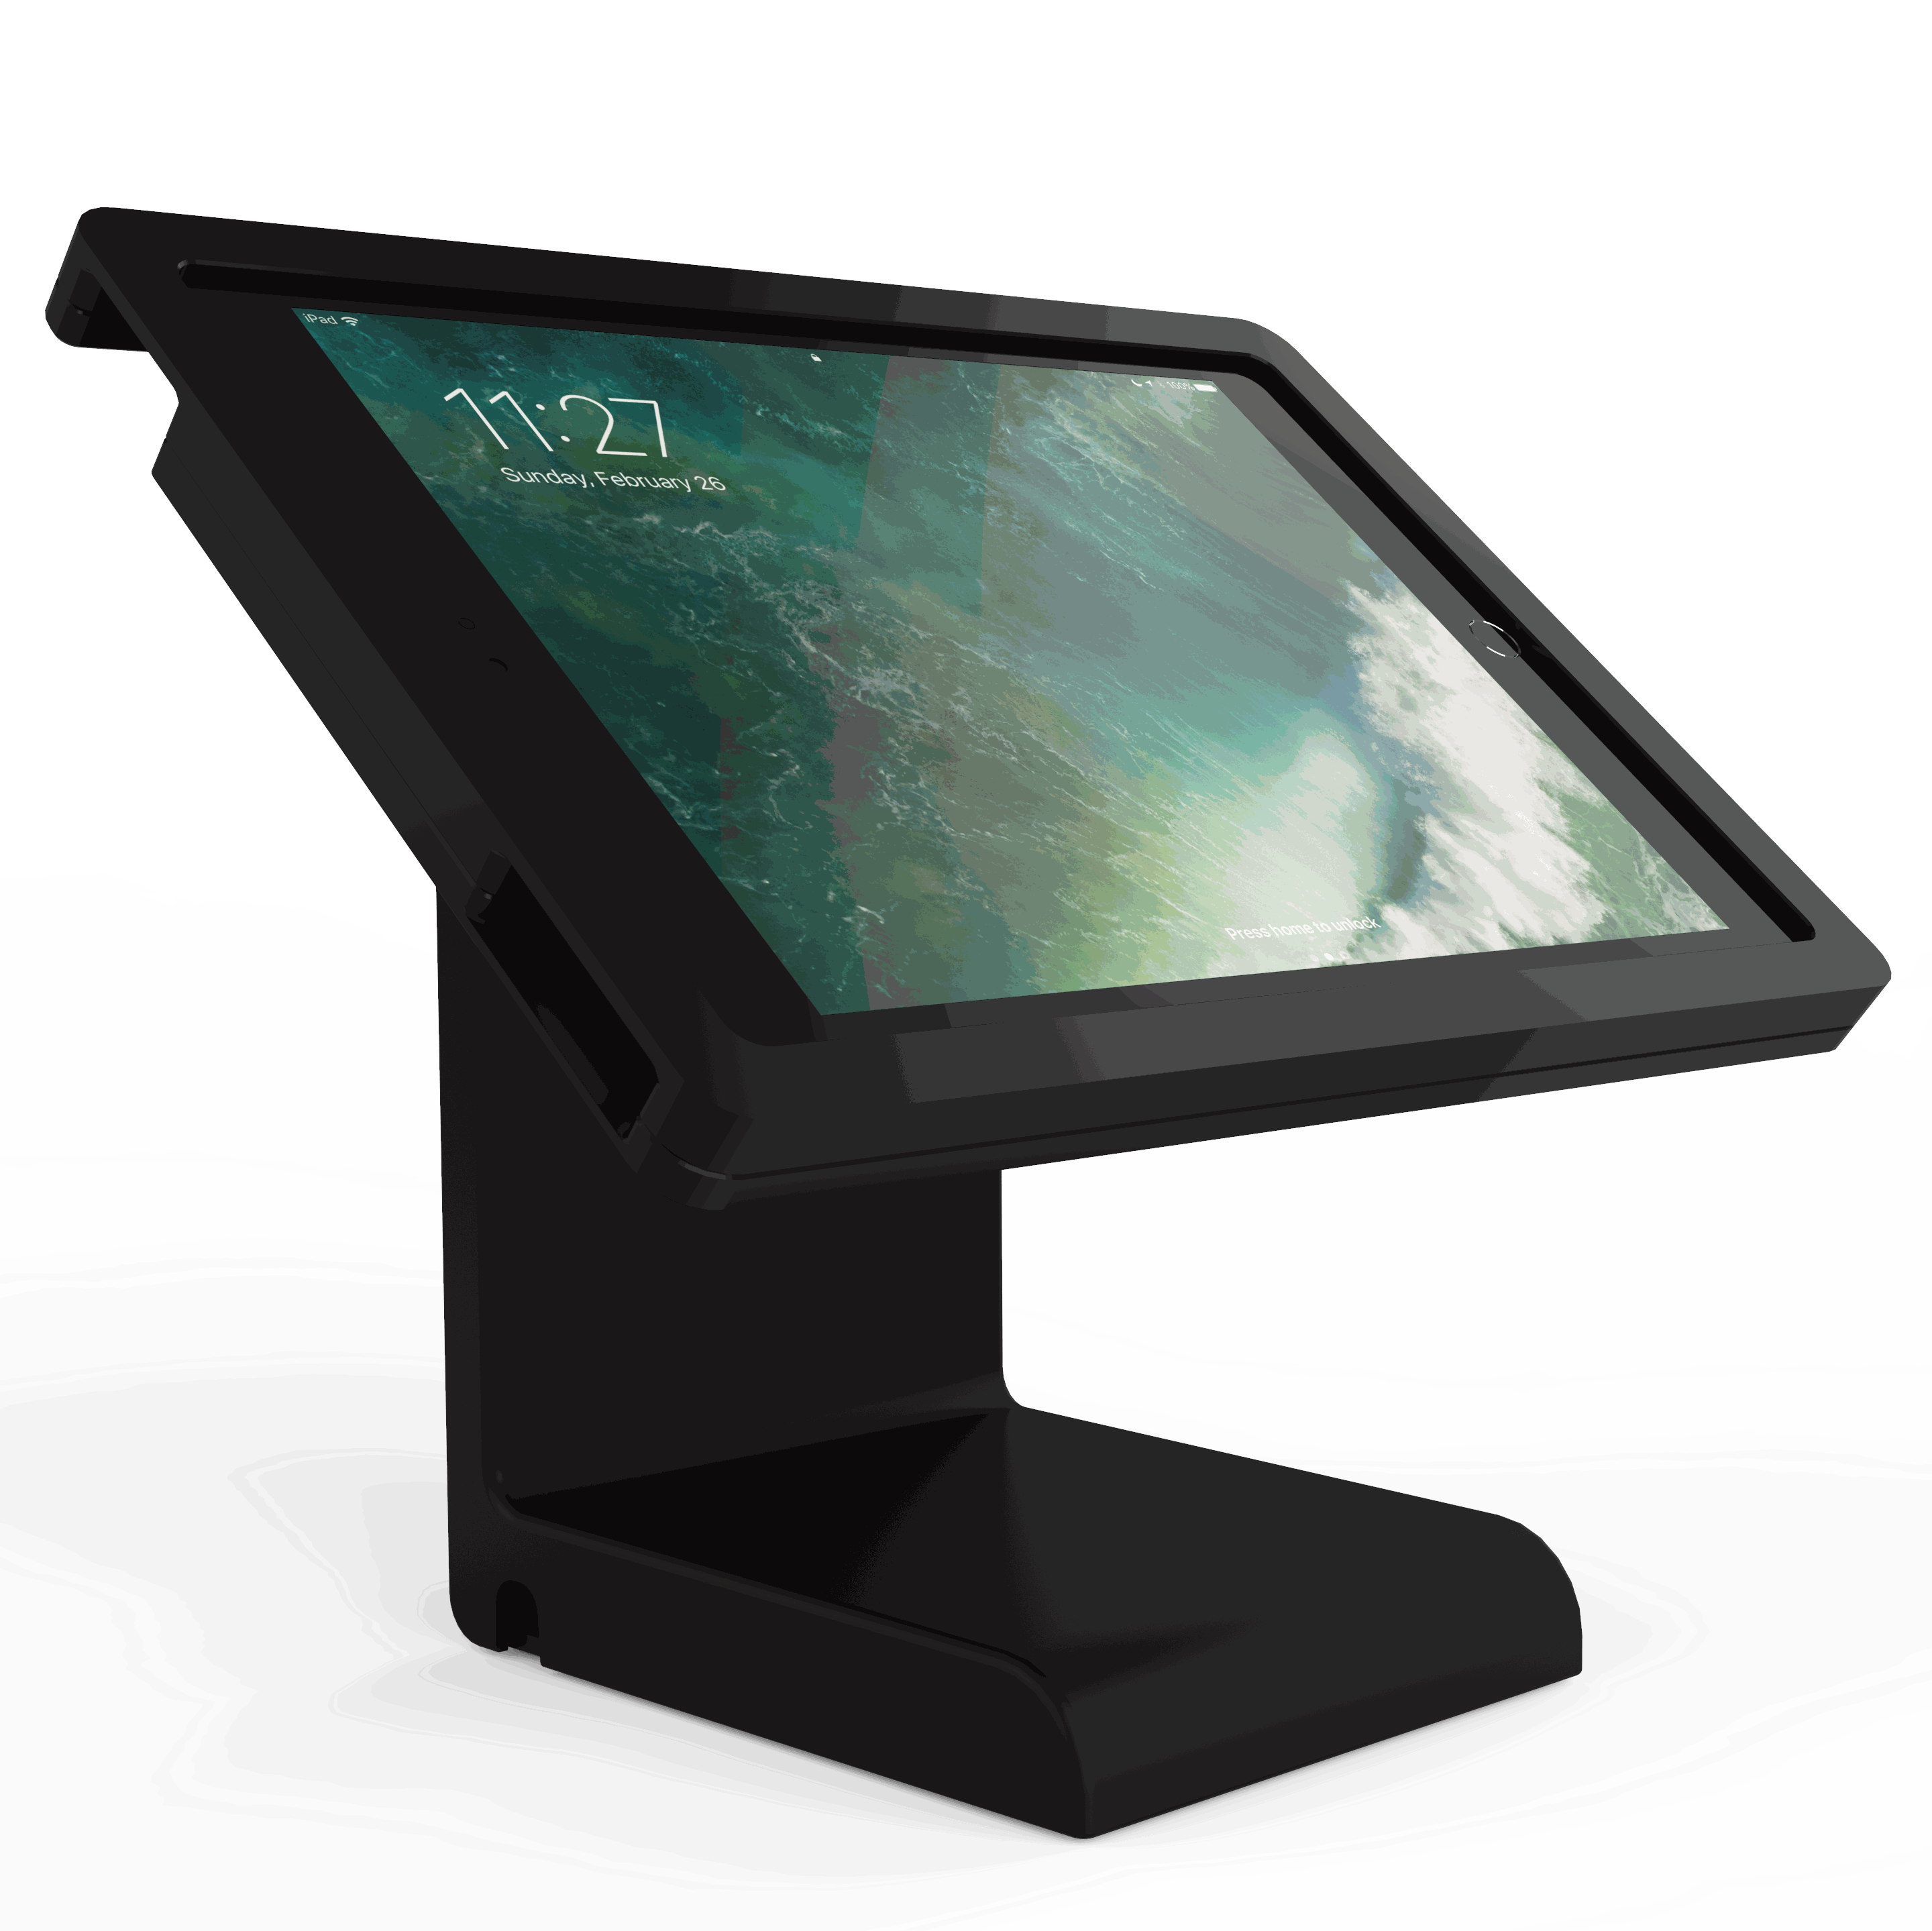 Vault Pro tablet enclosure